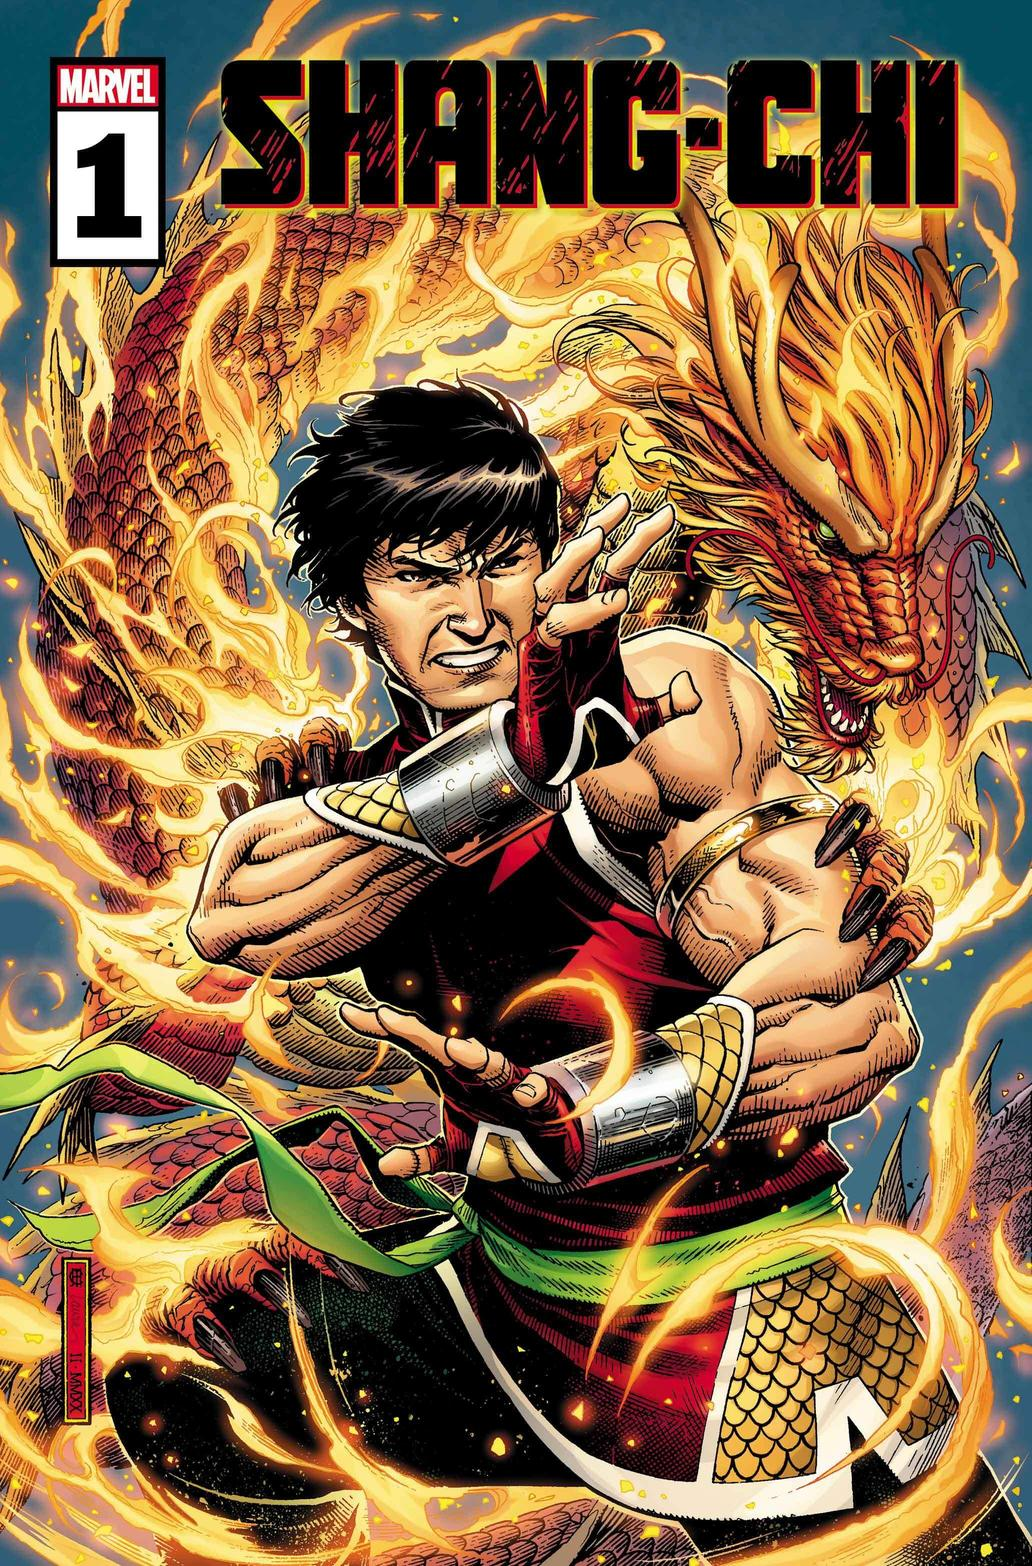 SHANG-CHI #1 WRITTEN BY GENE LUEN YANG, ART BY DIKE RUAN WITH PHILIP TAN, COVER BY JIM CHEUNG